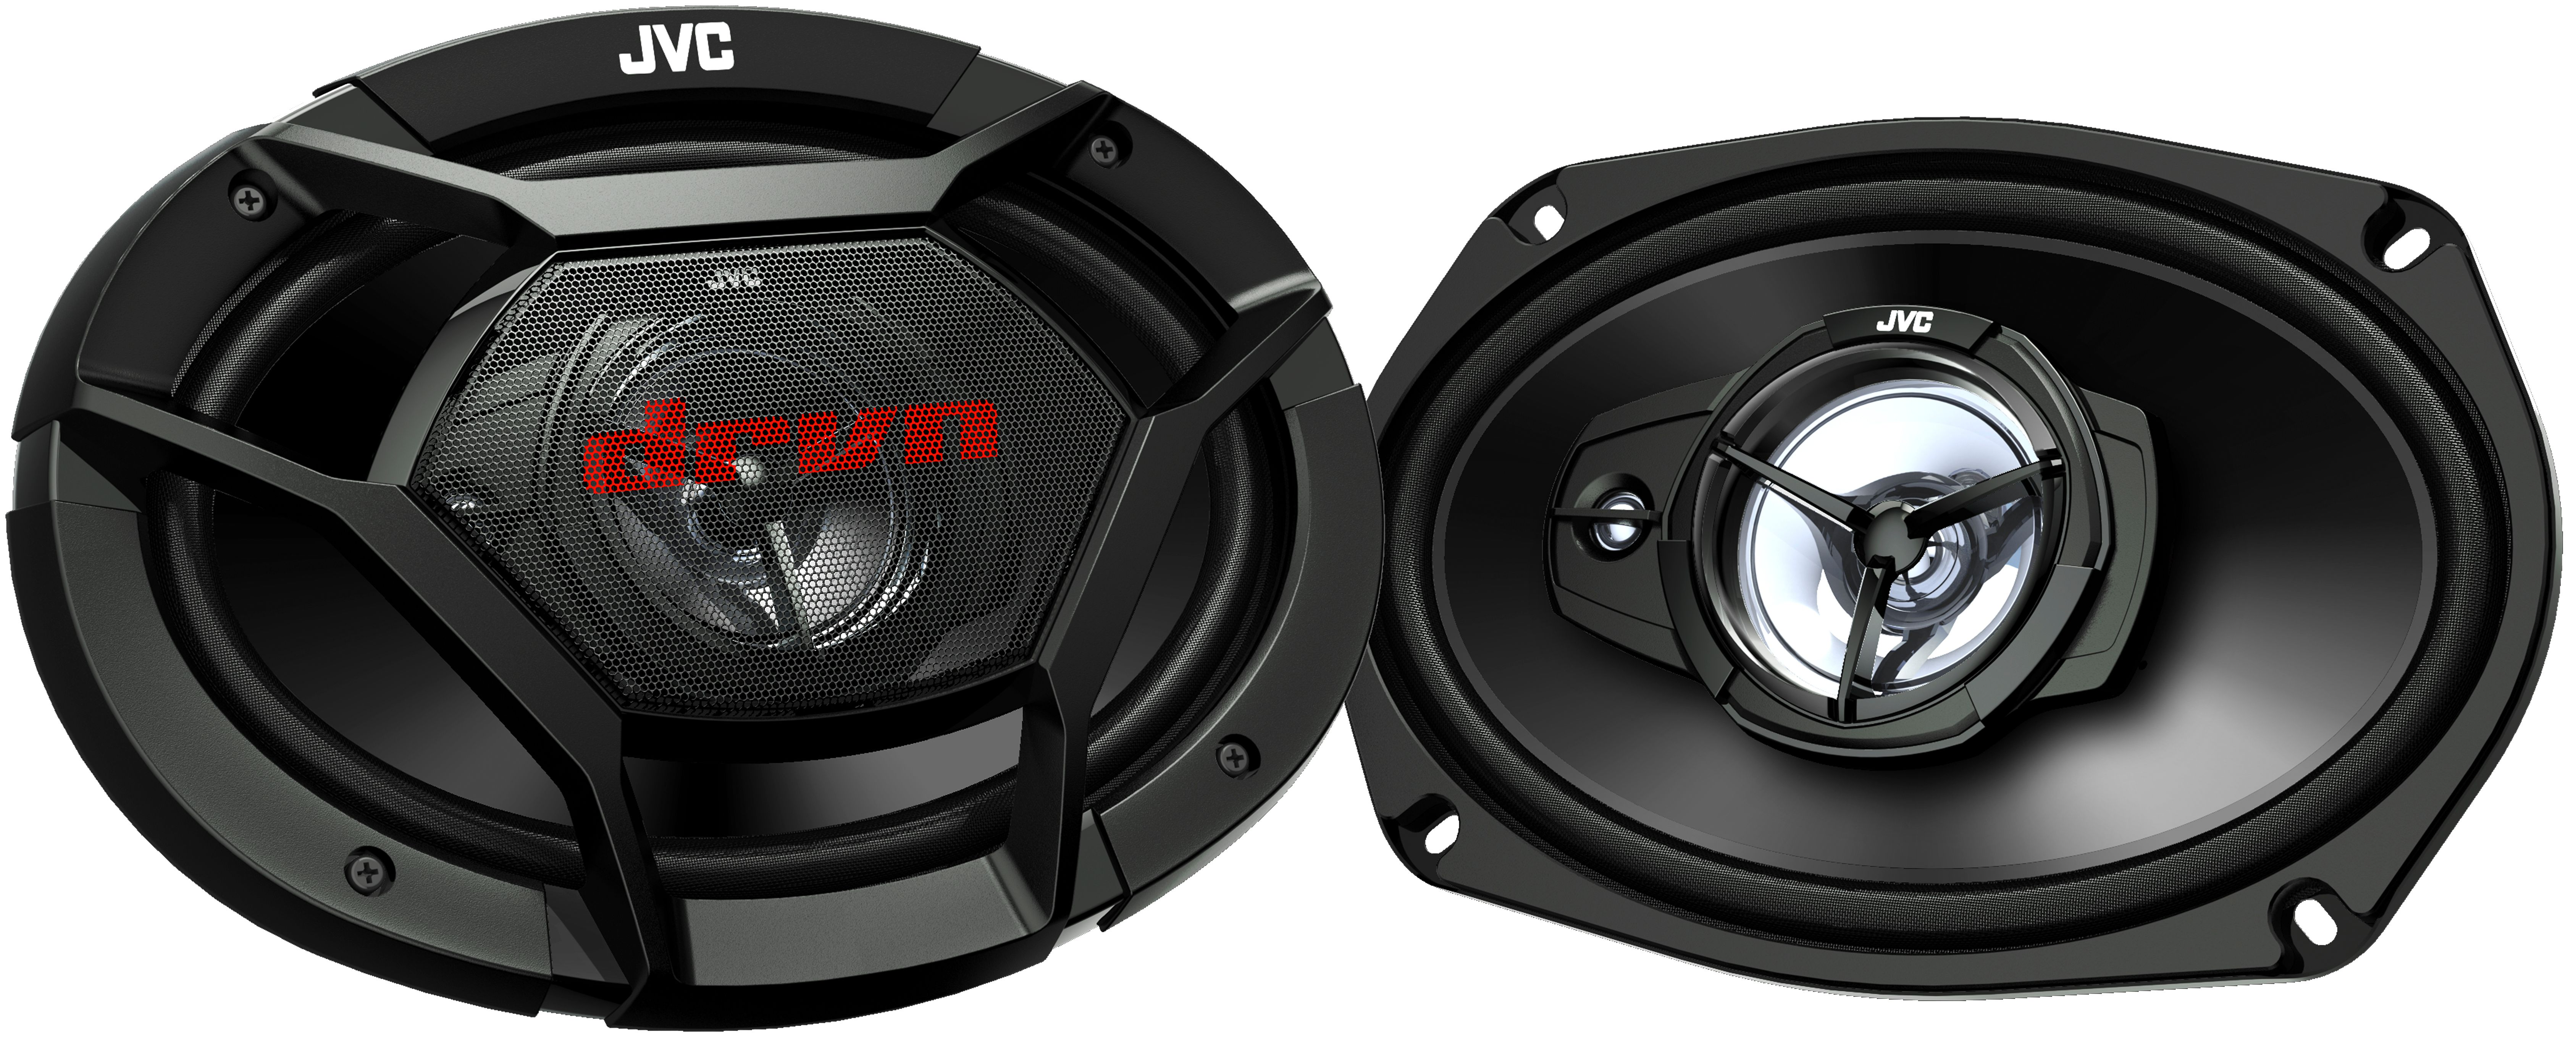 Bundle Combo with 2X JVC 6x9 3-Way Vehicle Coaxial Speakers Amp Kit Pioneer DEH-S4100BT Car Bluetooth Radio USB AUX CD Player Receiver 2X 6.5 Inch 2-Way Audio Speakers 4-Channel Amplifier